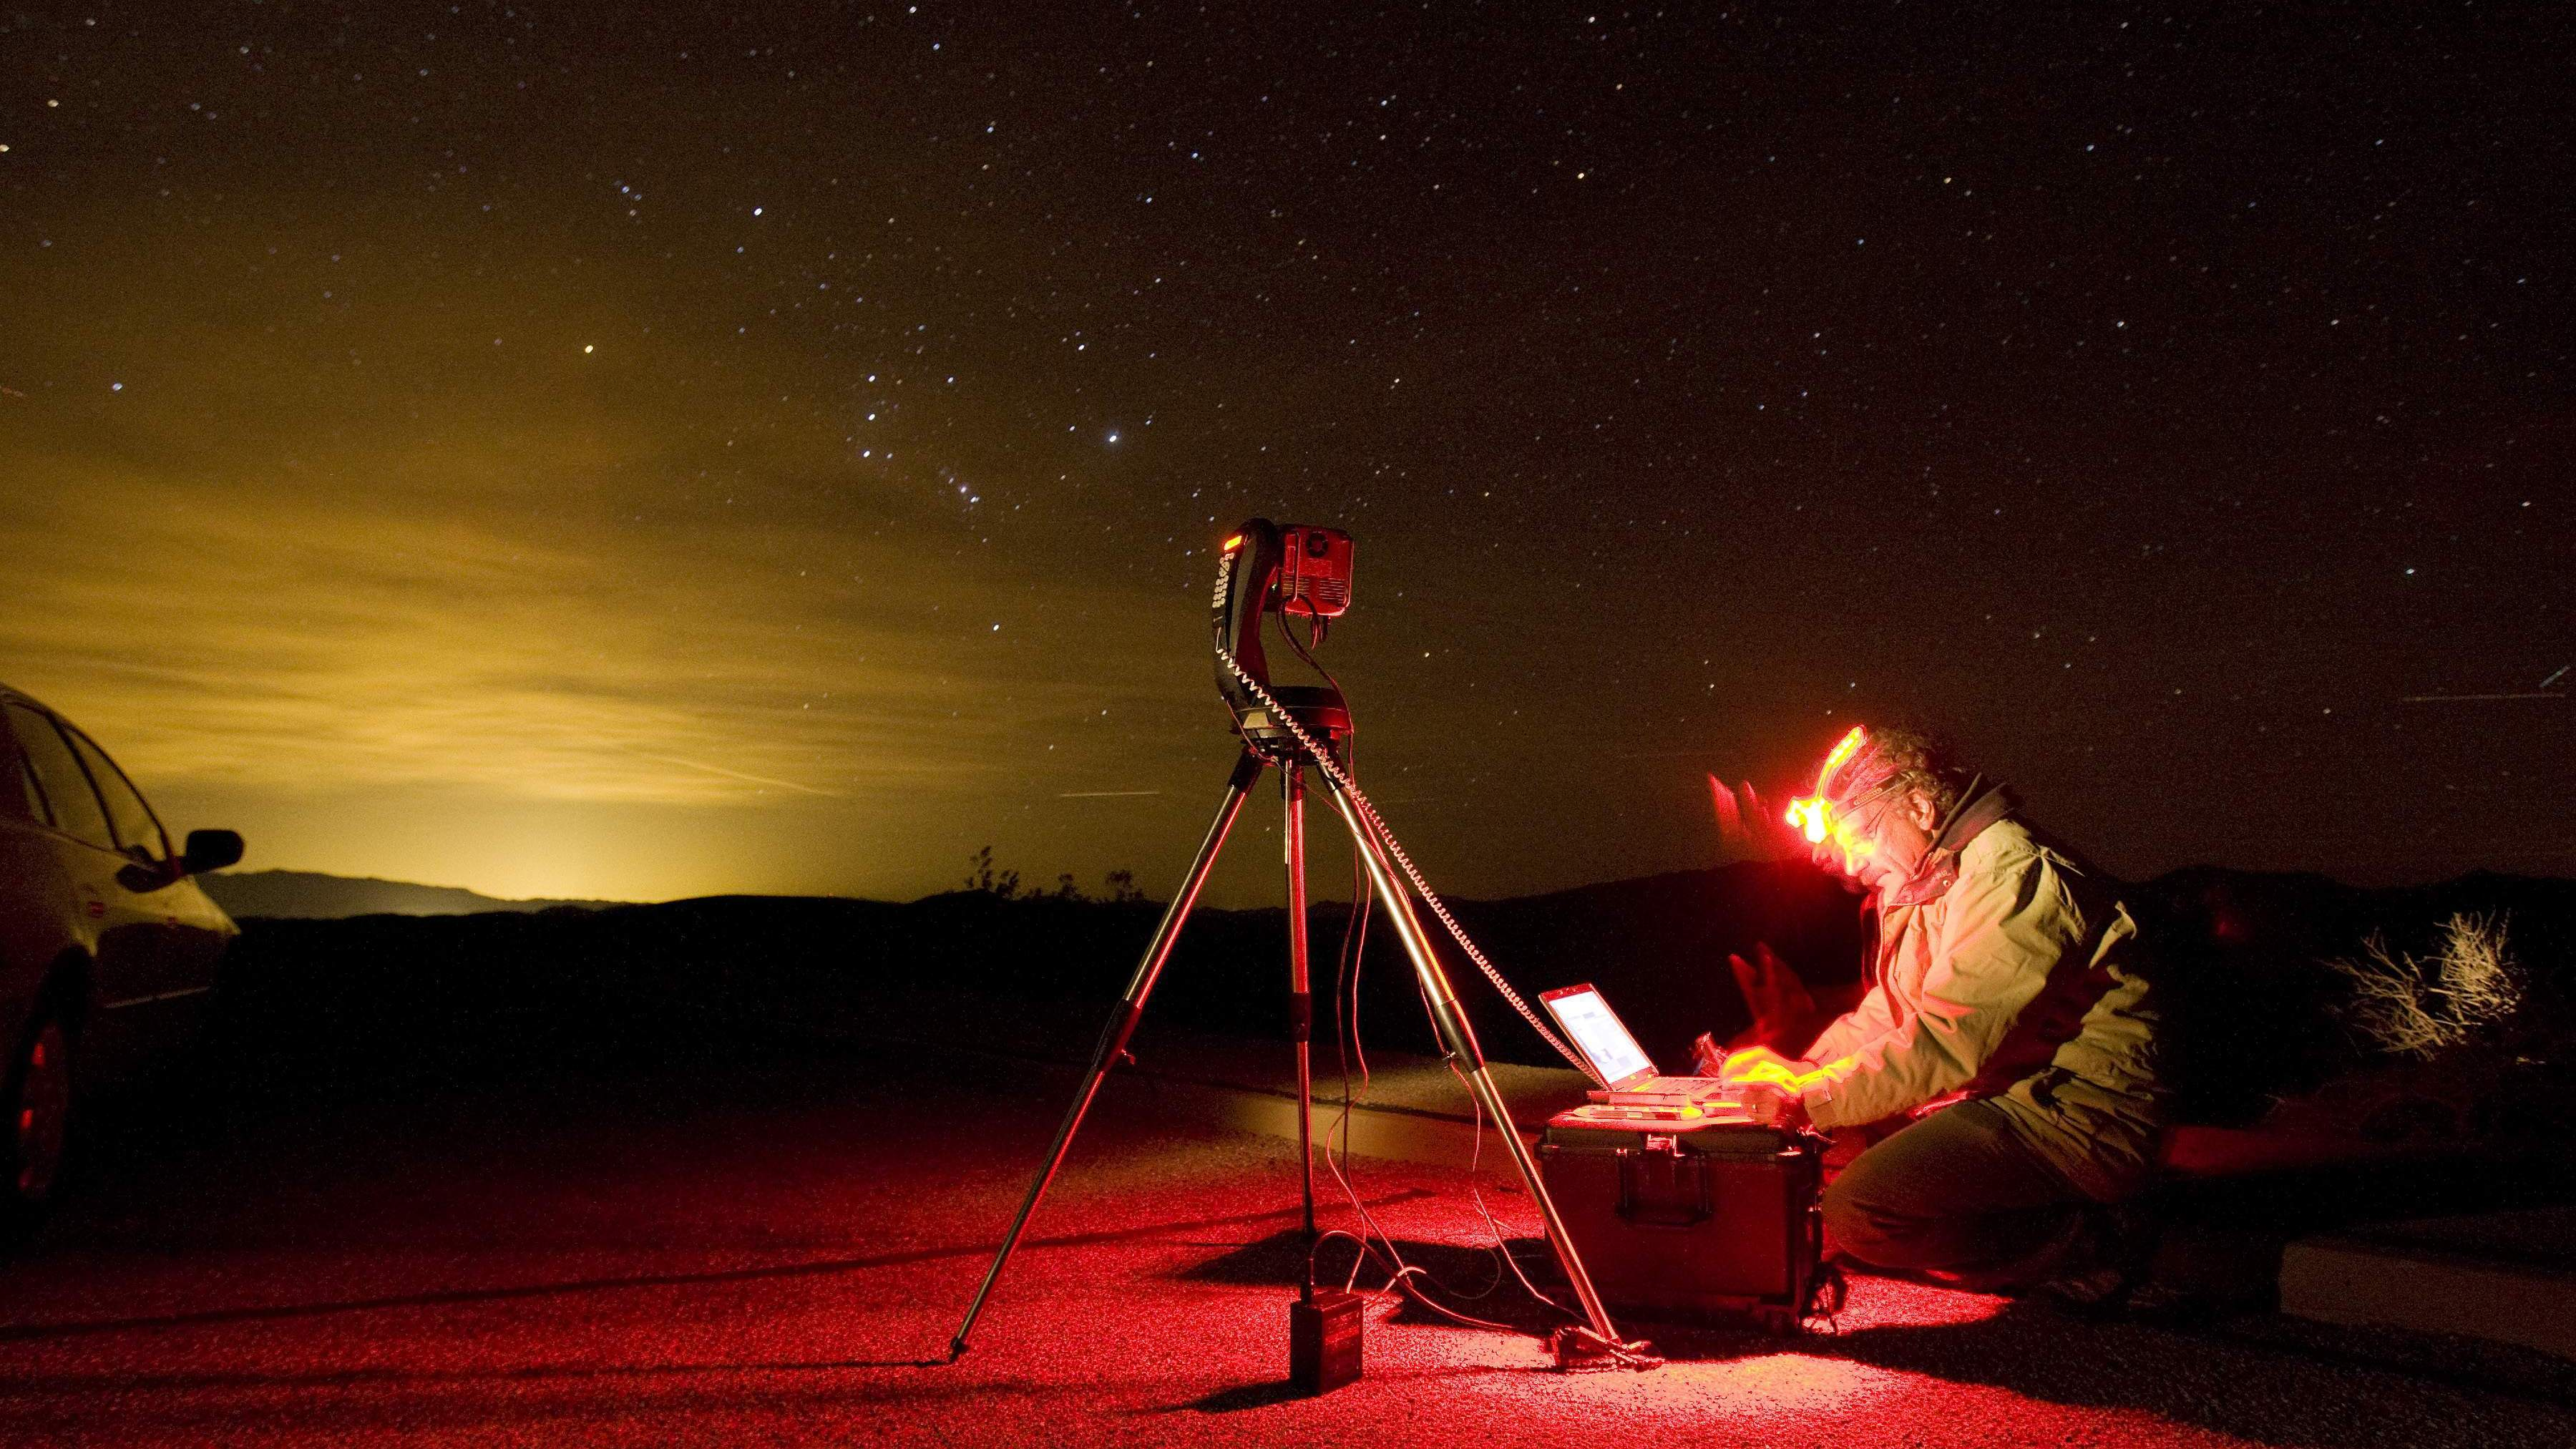 For City Dwellers, Stargazing Can Make For A Stellar Vacation